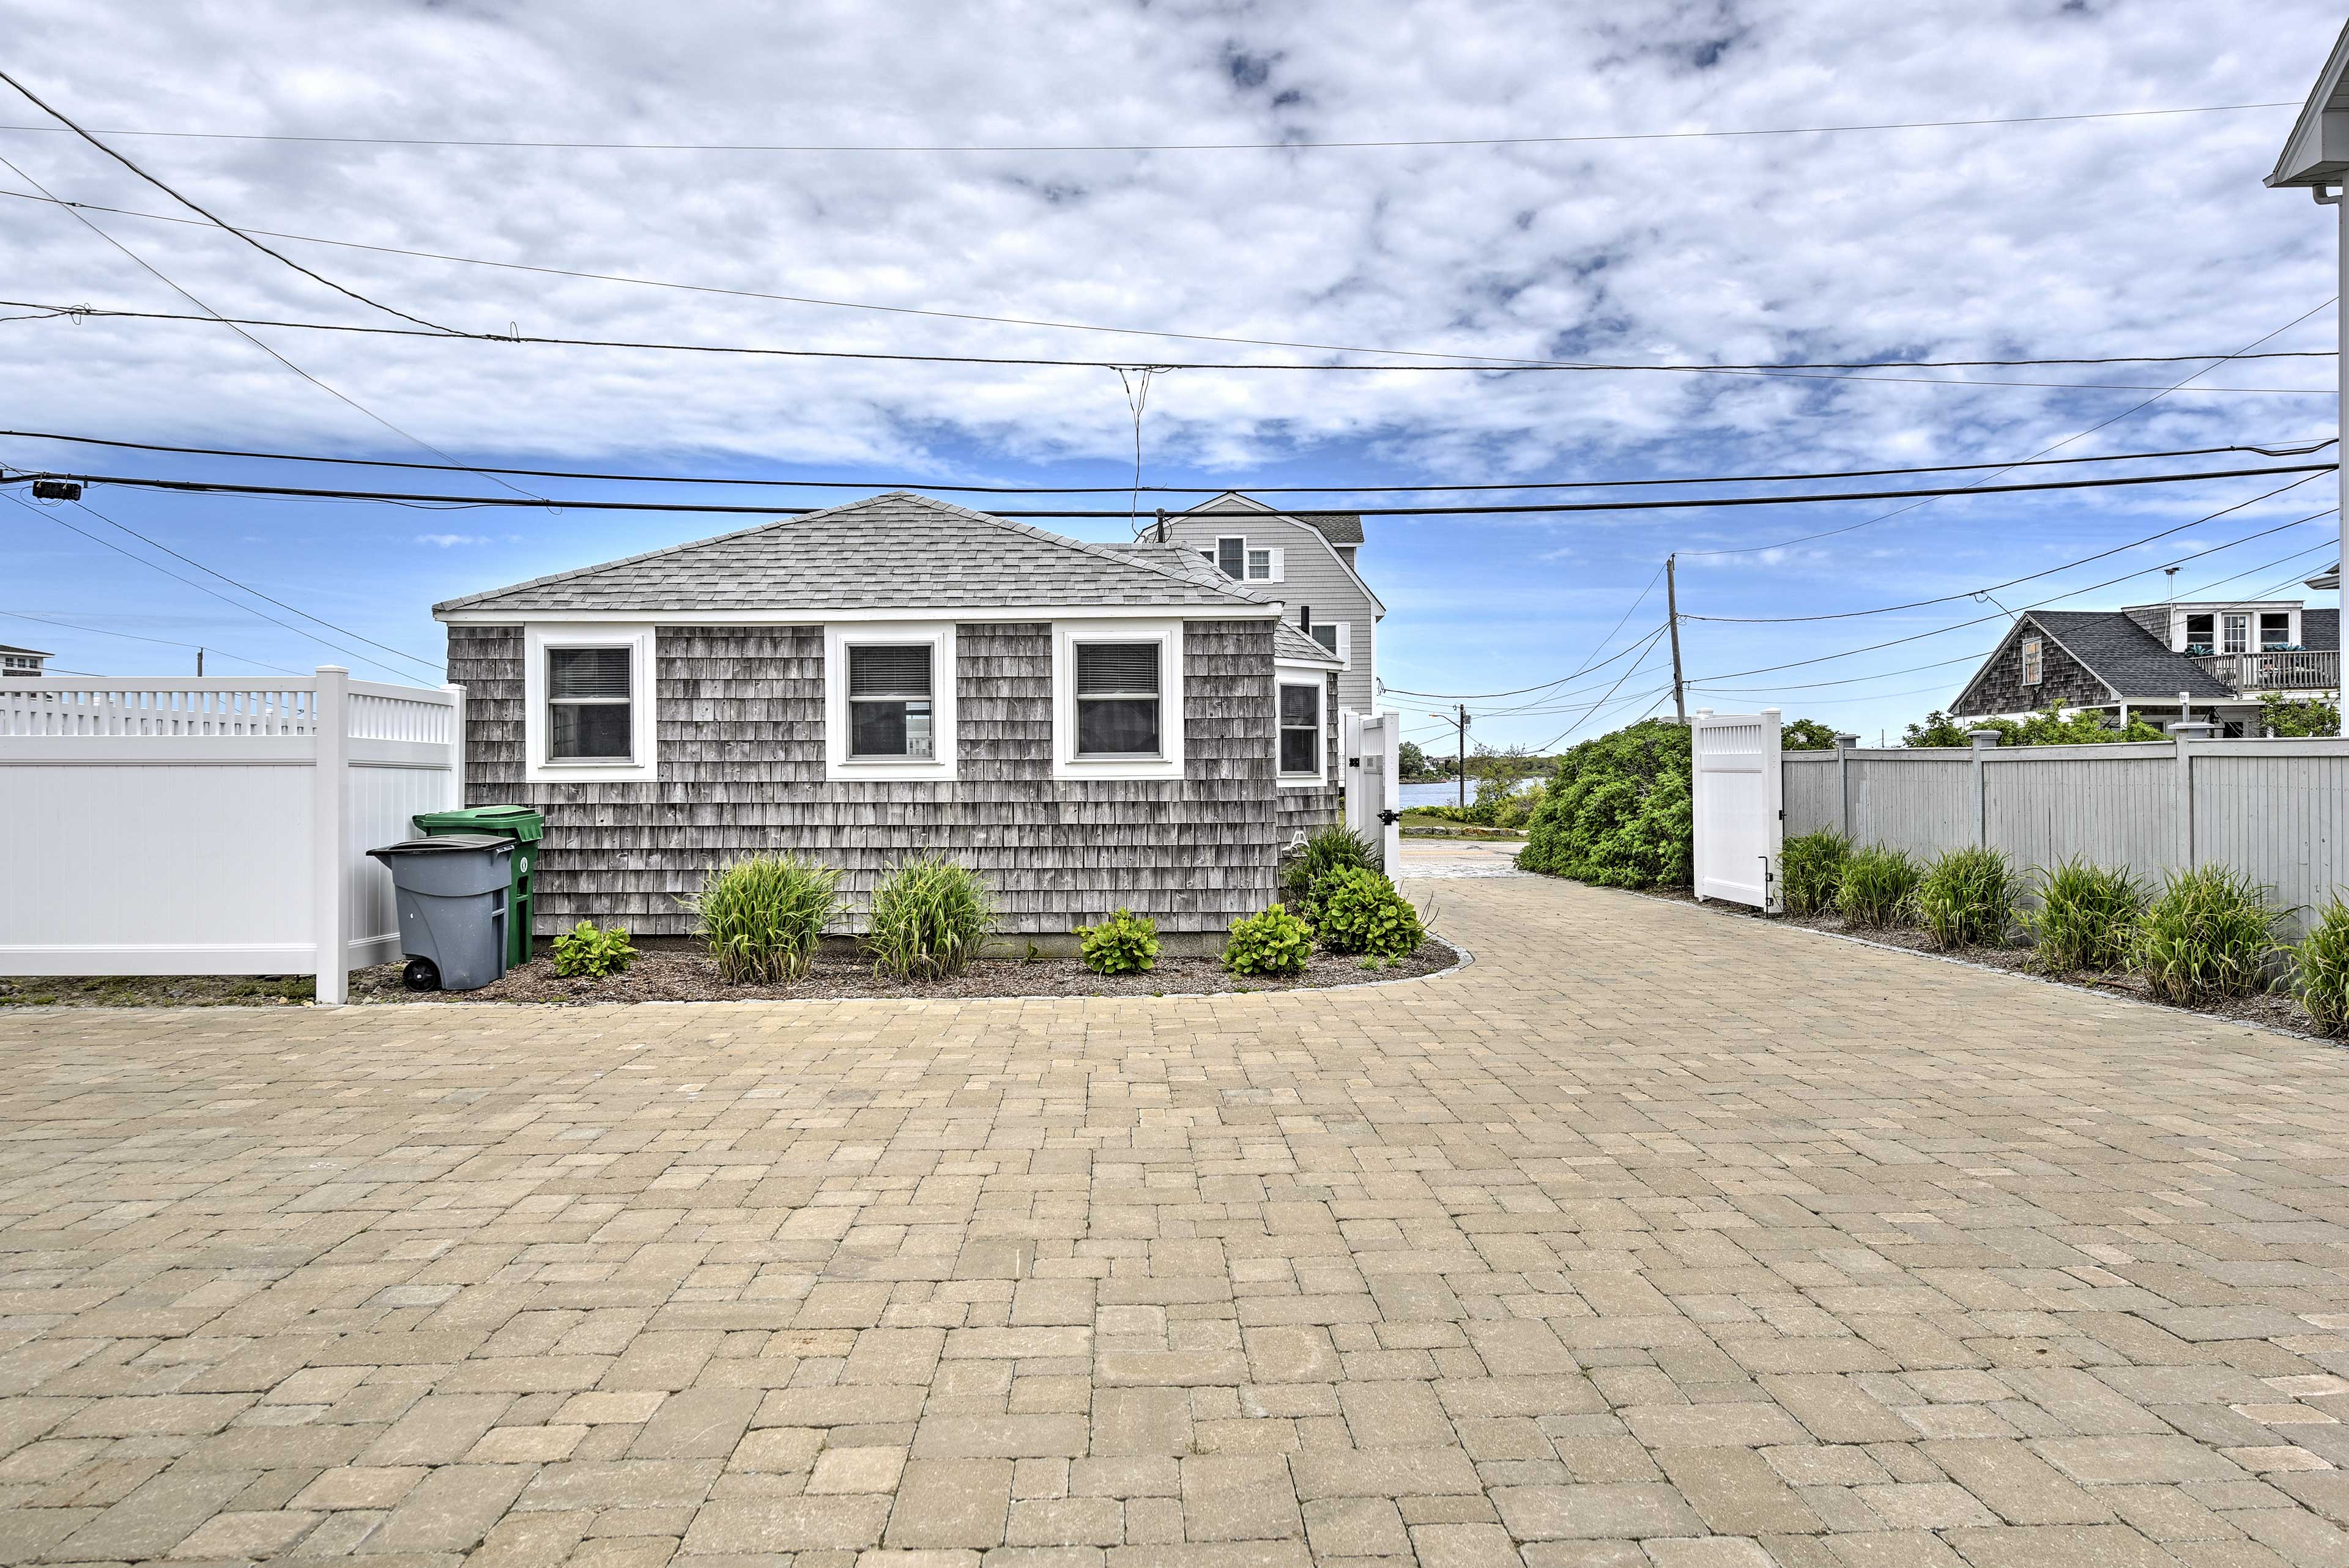 Explore the charming small town of South Kingstonfrom this Rhode Island home!